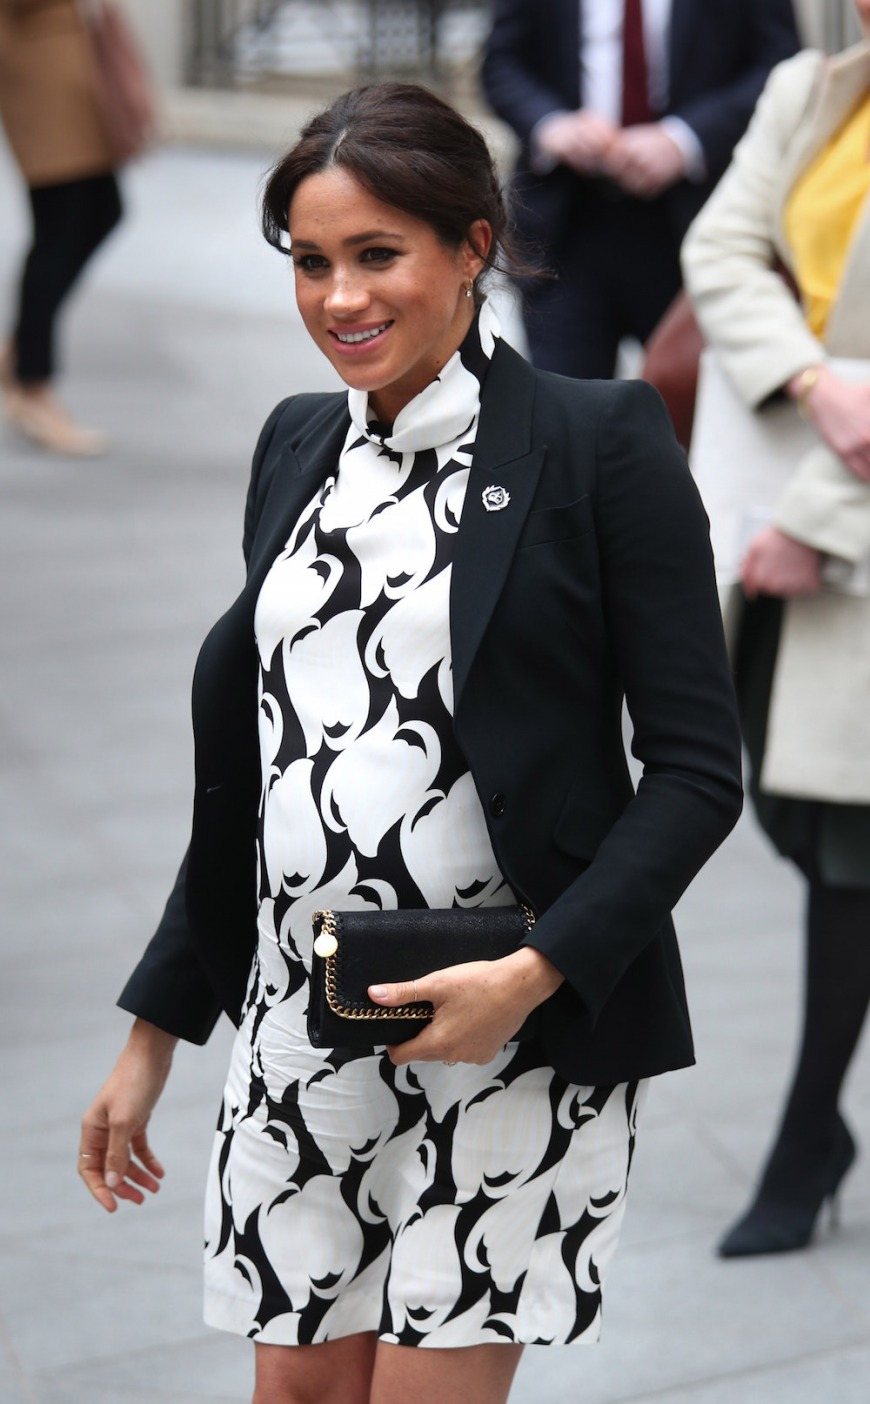 Showing her bump: The Duchess of Sussex on International Women's Day